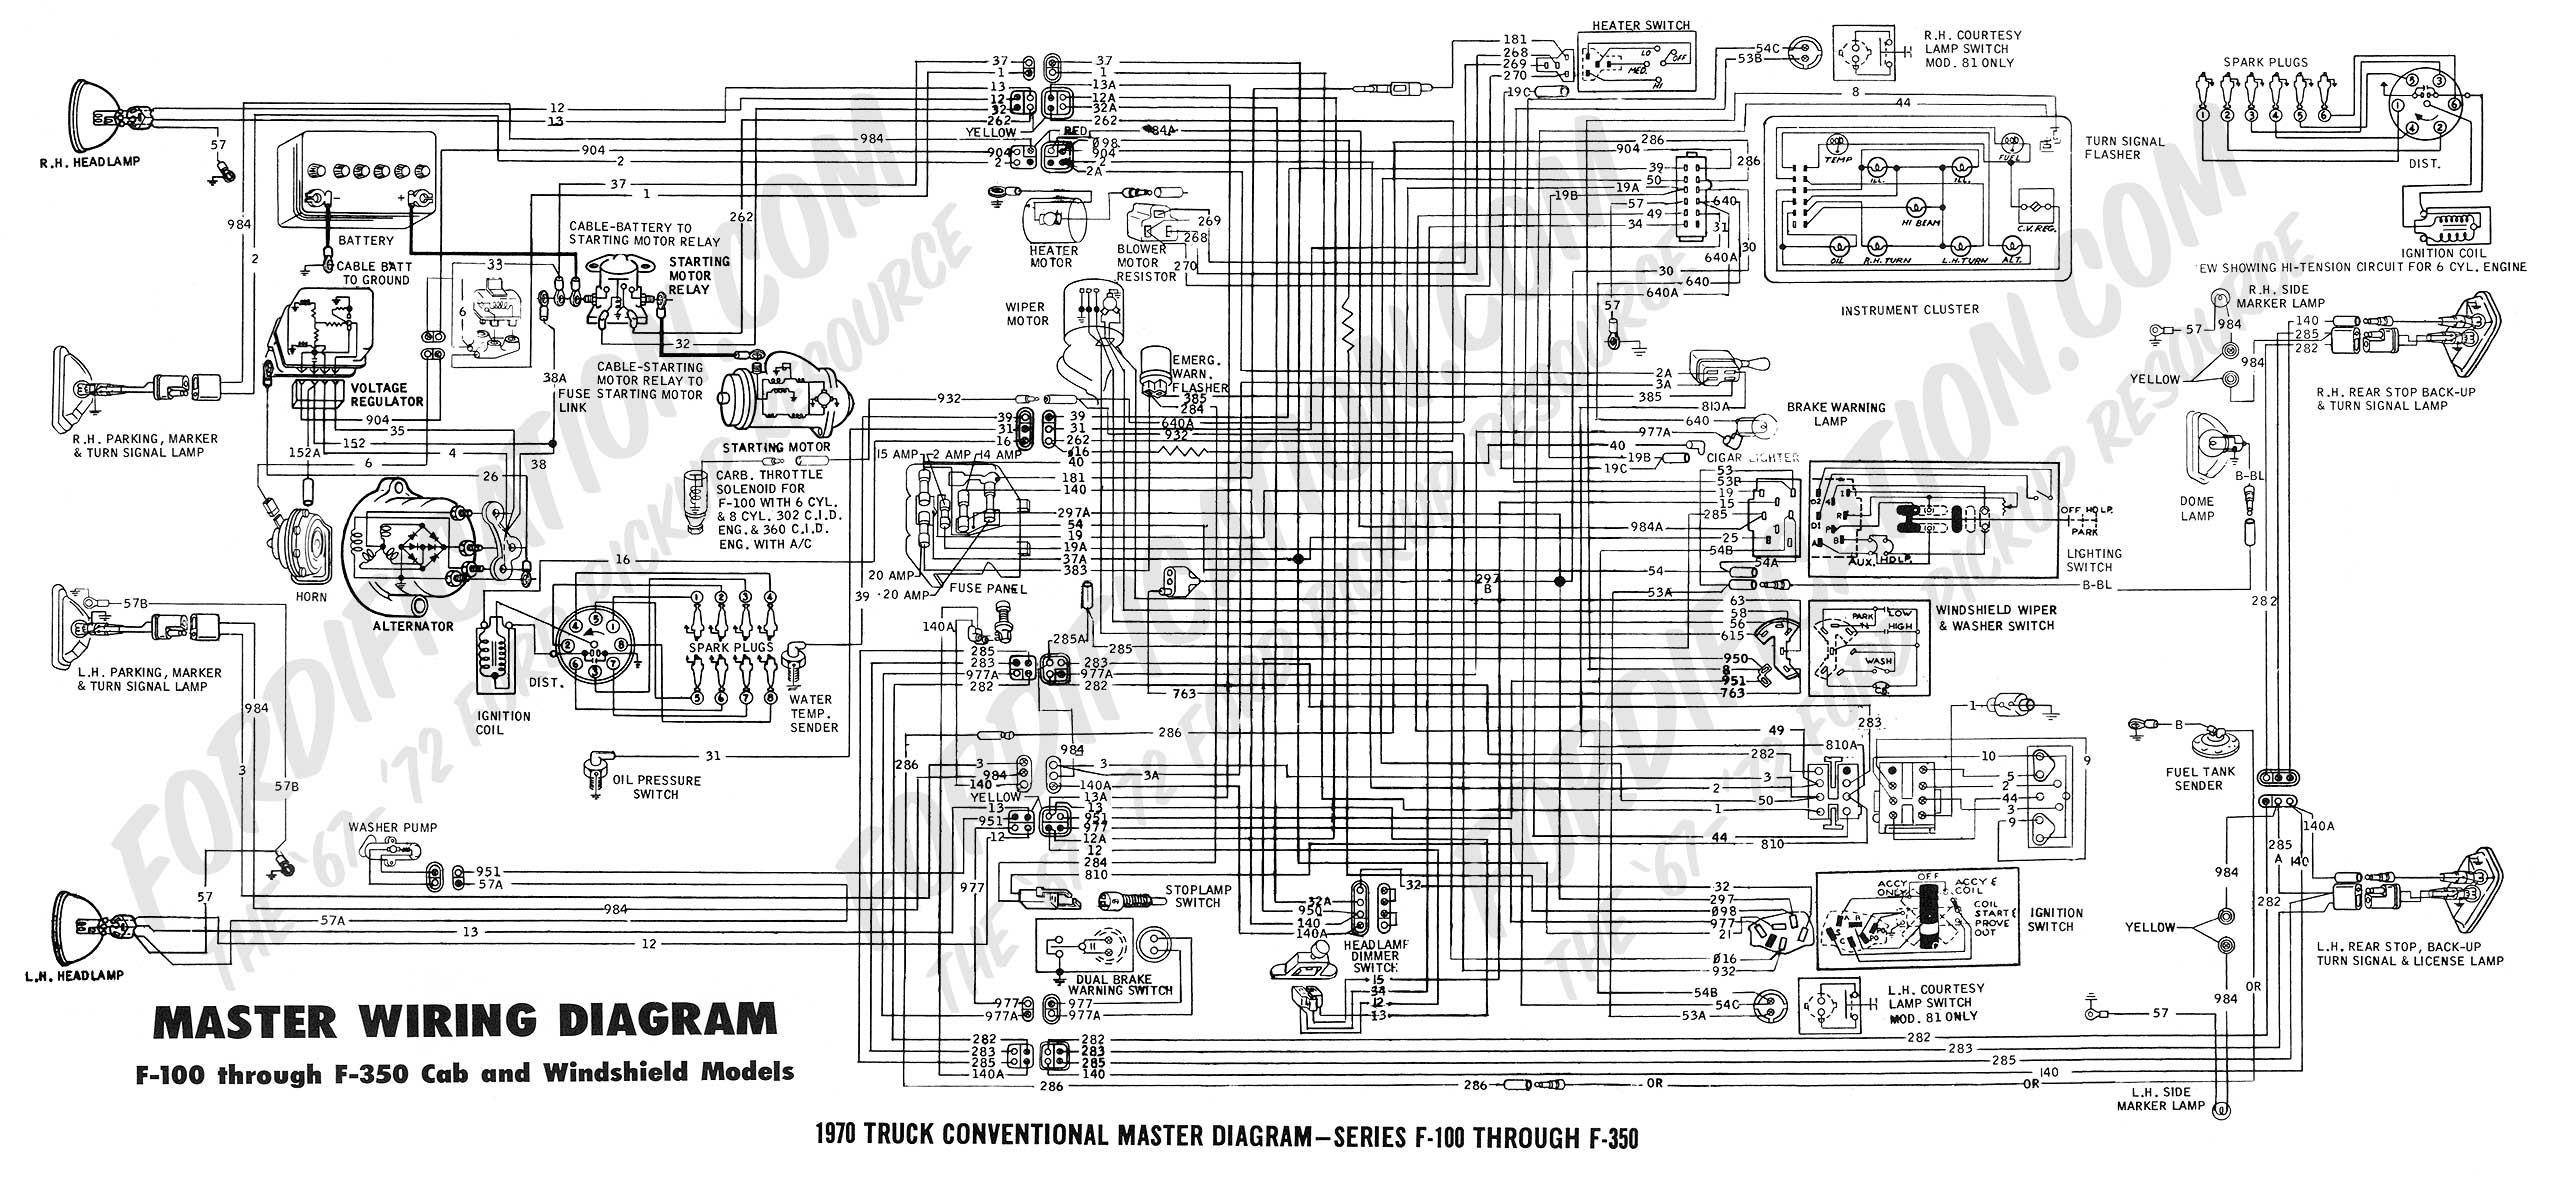 wiring diagram 70_master 1986 ford f150 wiring diagram 1986 ford bronco ii wiring diagram  at gsmx.co